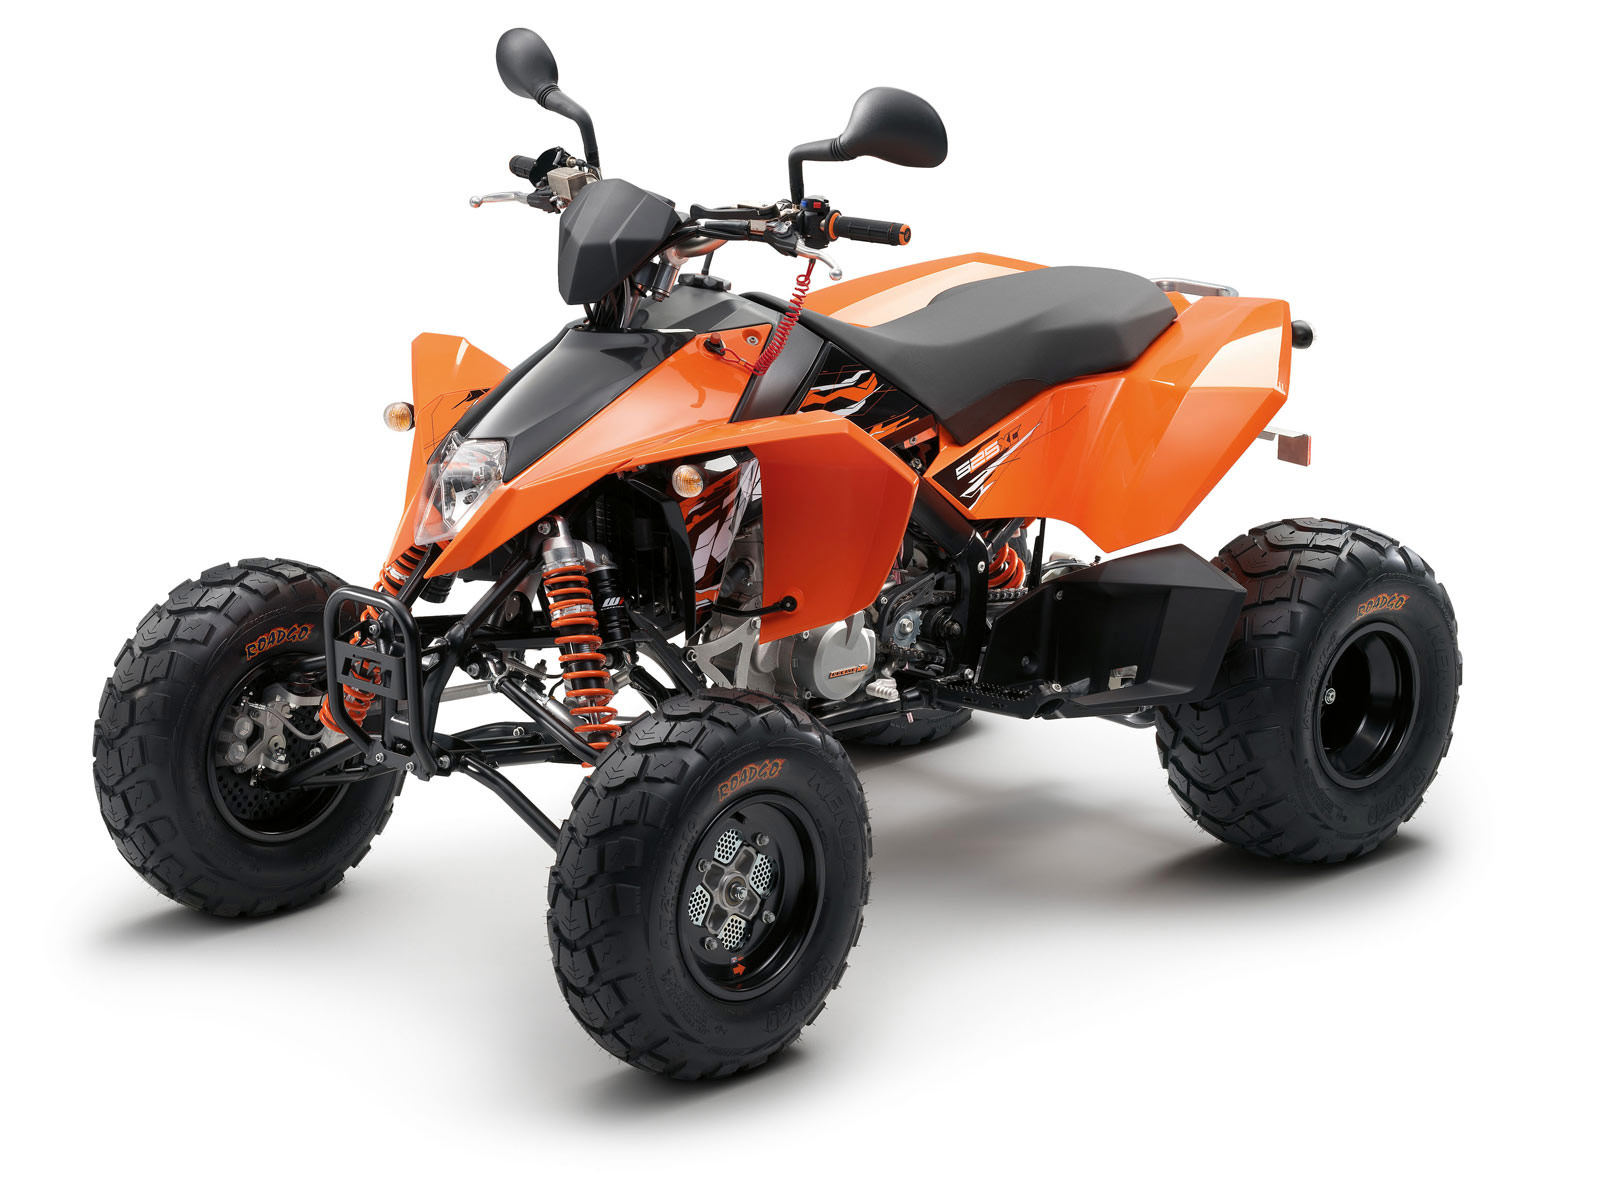 2010 ktm 525 xc atv wallpapers and specifications. Black Bedroom Furniture Sets. Home Design Ideas